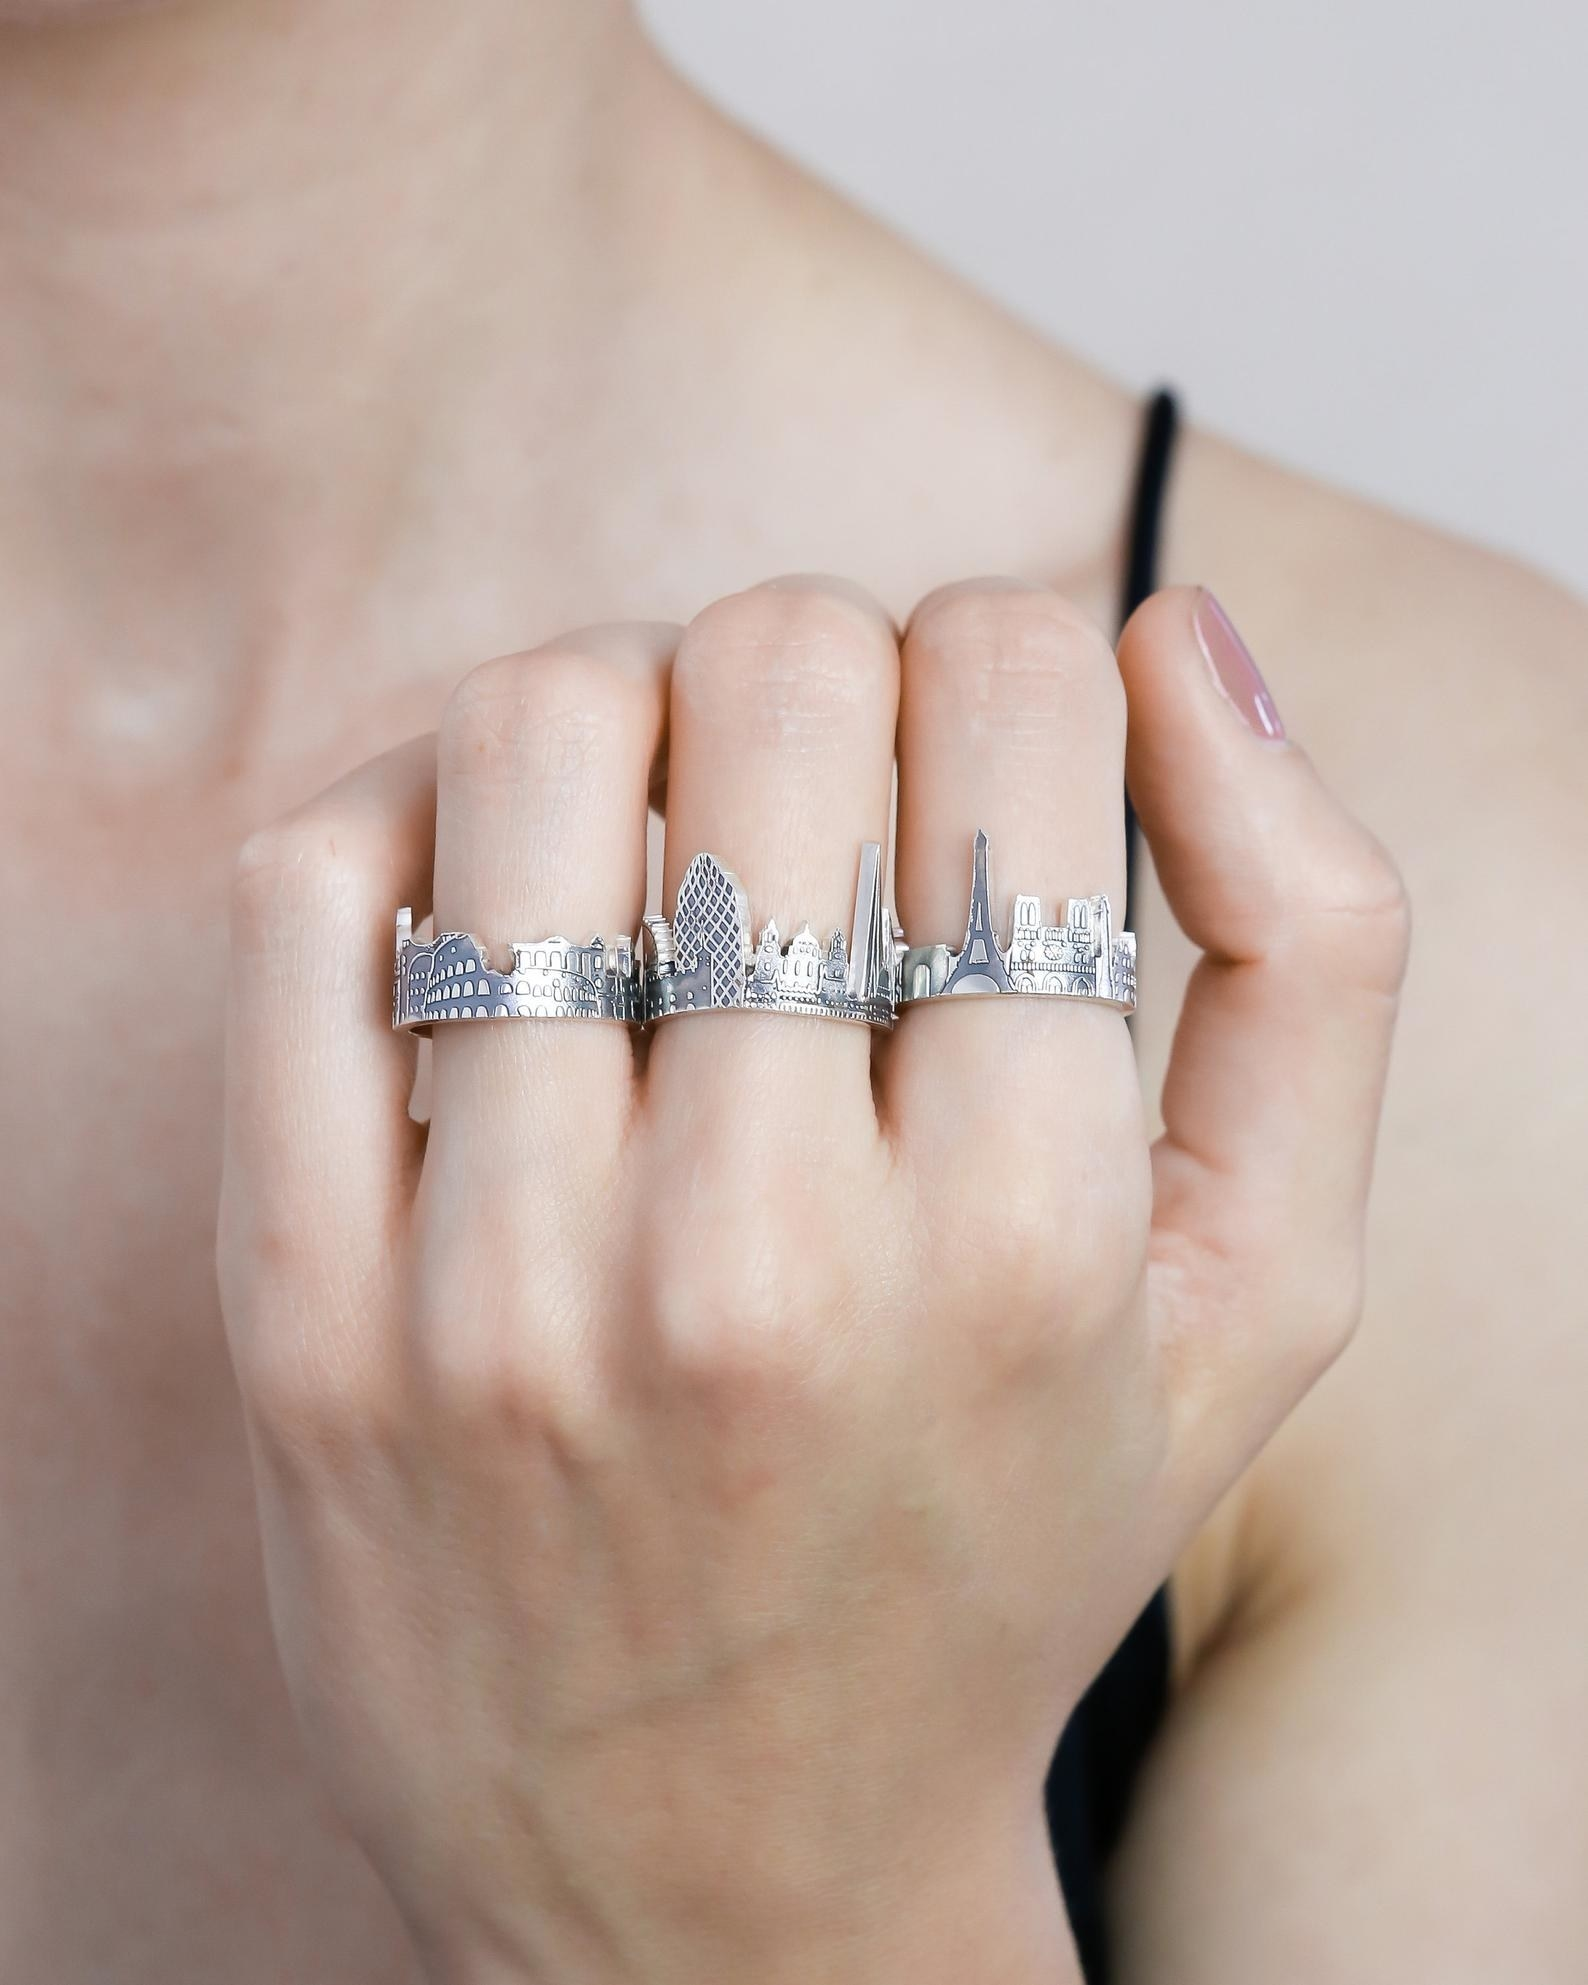 model wearing three rings which are shaped like the skylines of different cities. The one on the pointer finger has a Paris skyline.